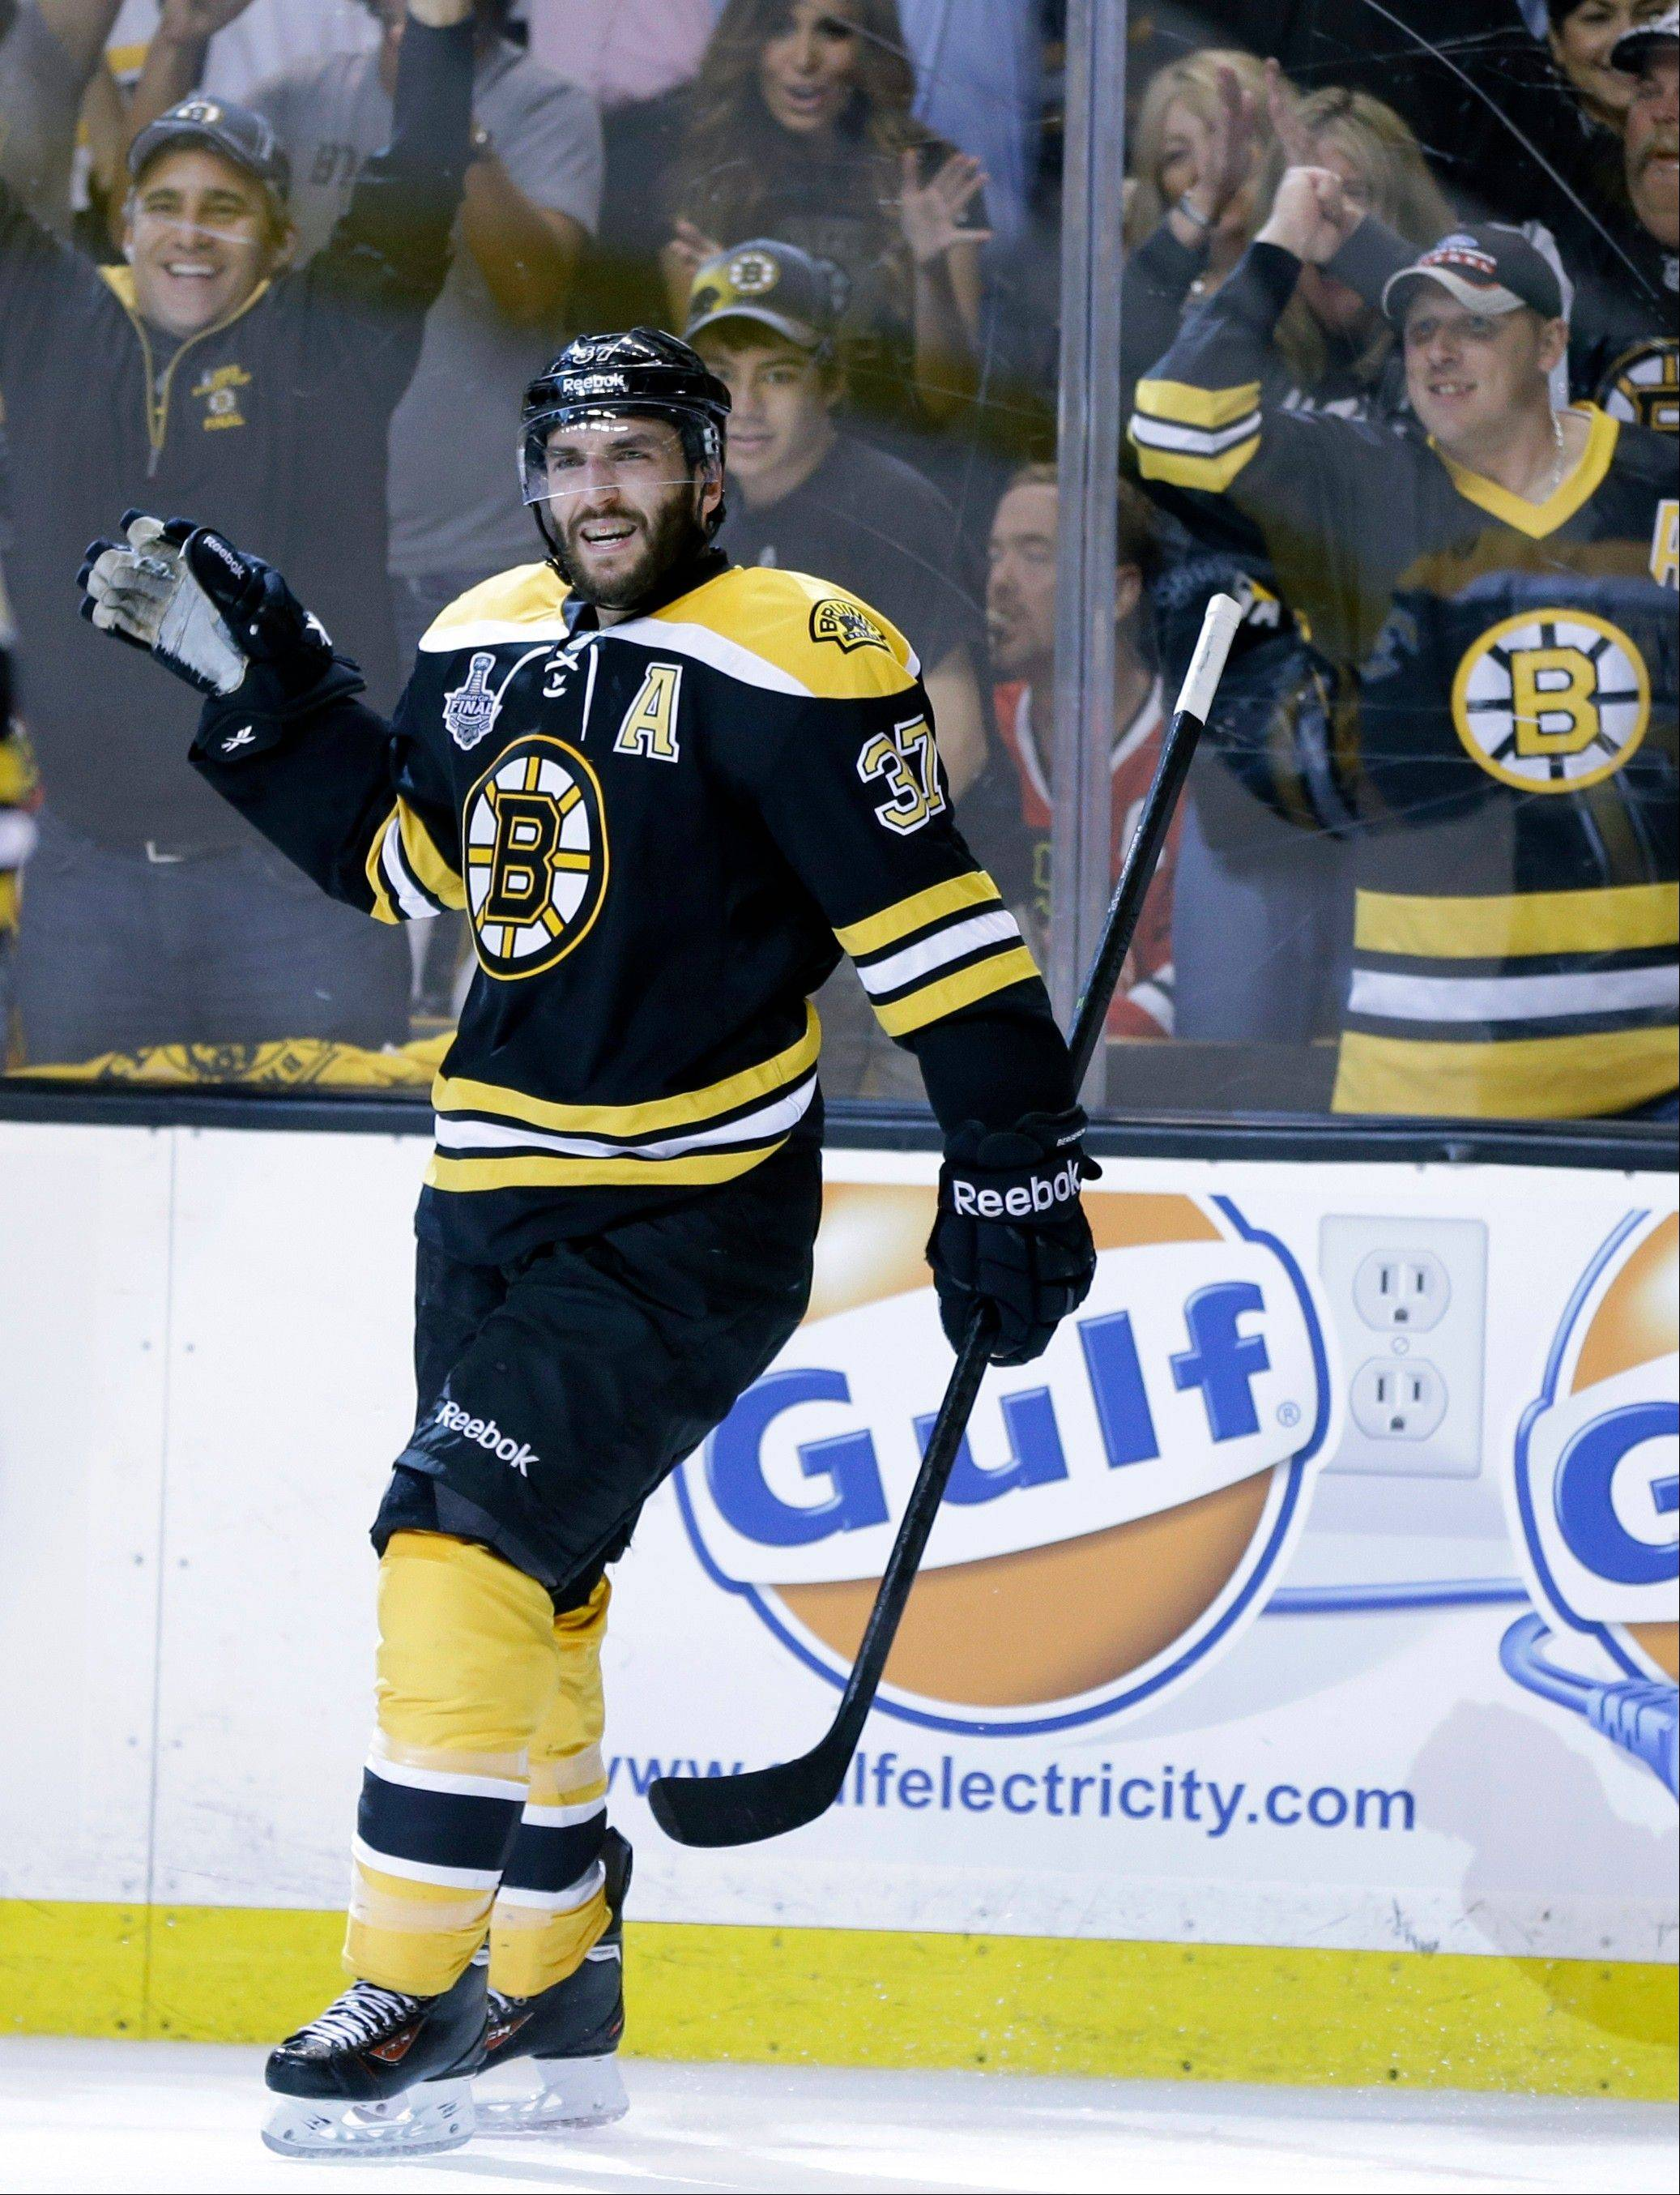 Boston Bruins center Patrice Bergeron not only scored a goal against the Blackhawks in Game 3, he also won 24 of 28 faceoffs.